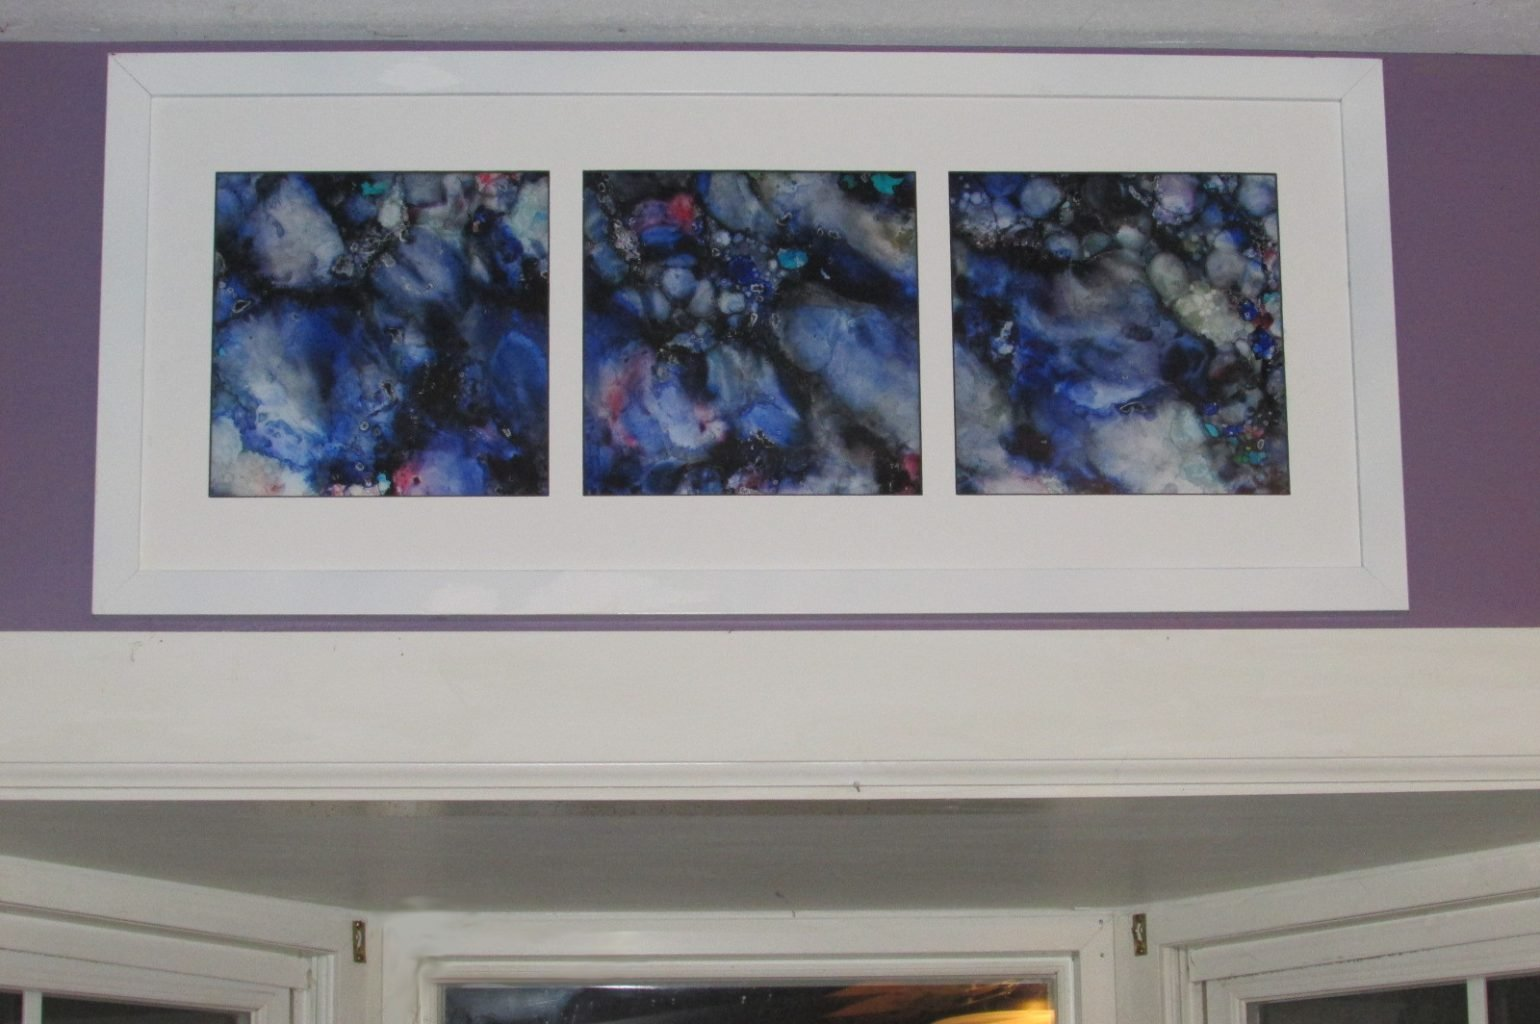 Alcohol ink frame hanging